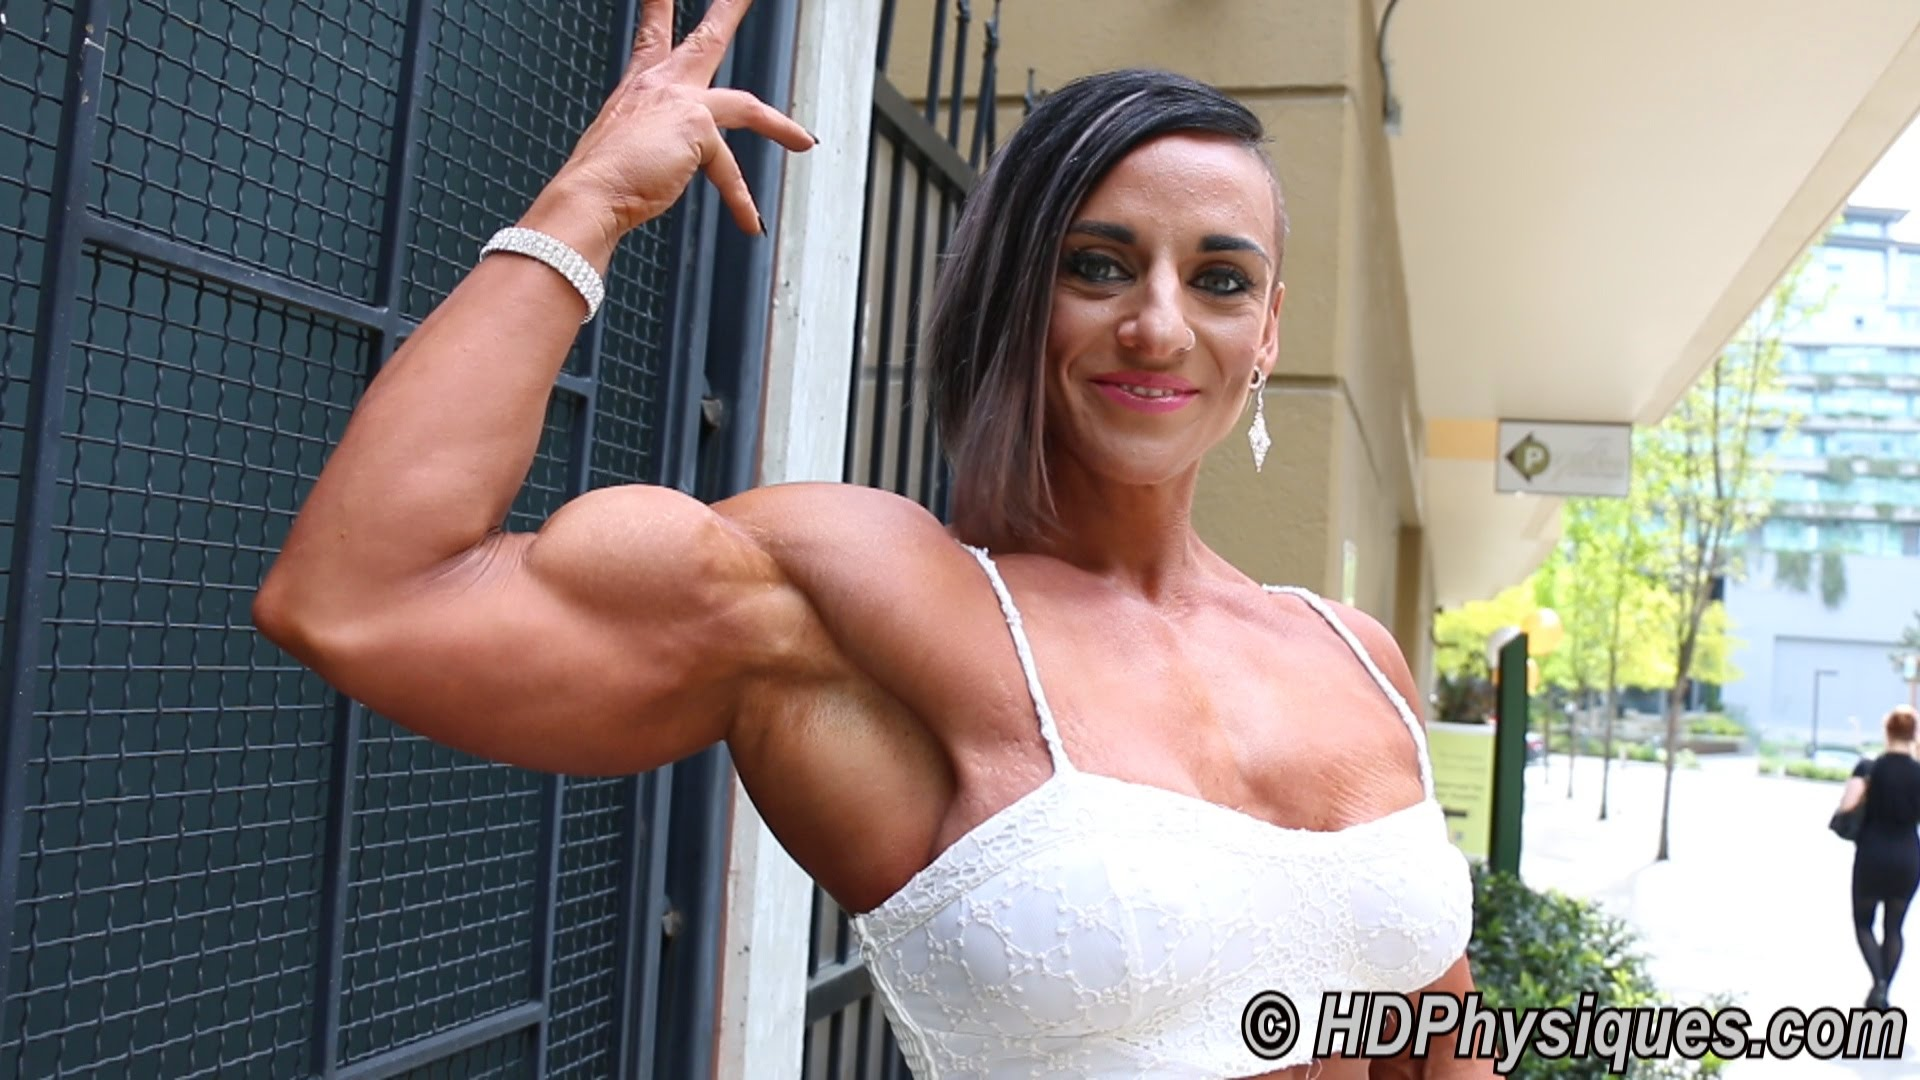 Tarna Alderman – Powerful Muscles